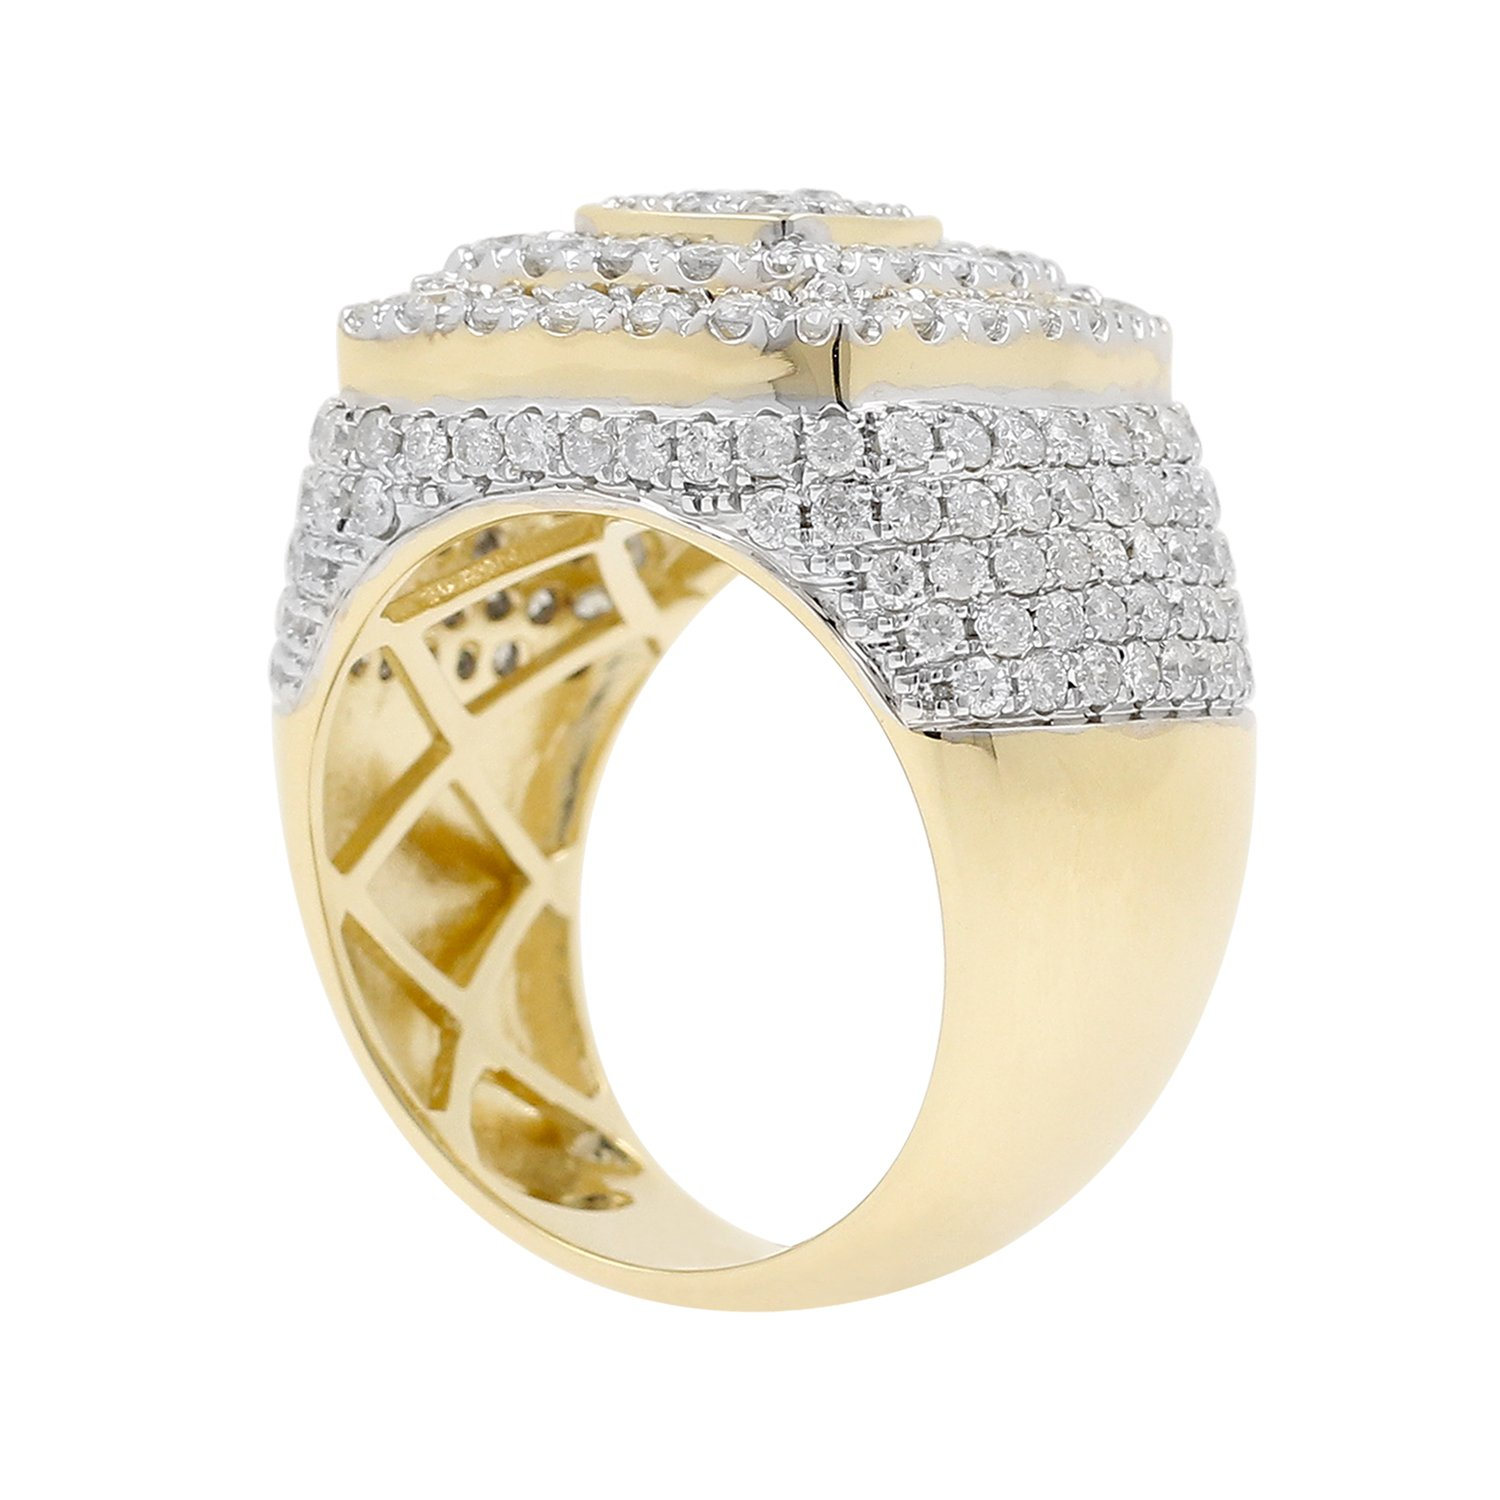 4.15 Carat 10kt Yellow Gold Diamond Cluster Men's Statement Pinky Ring by Isha Luxe-Mens Collection (Image #2)